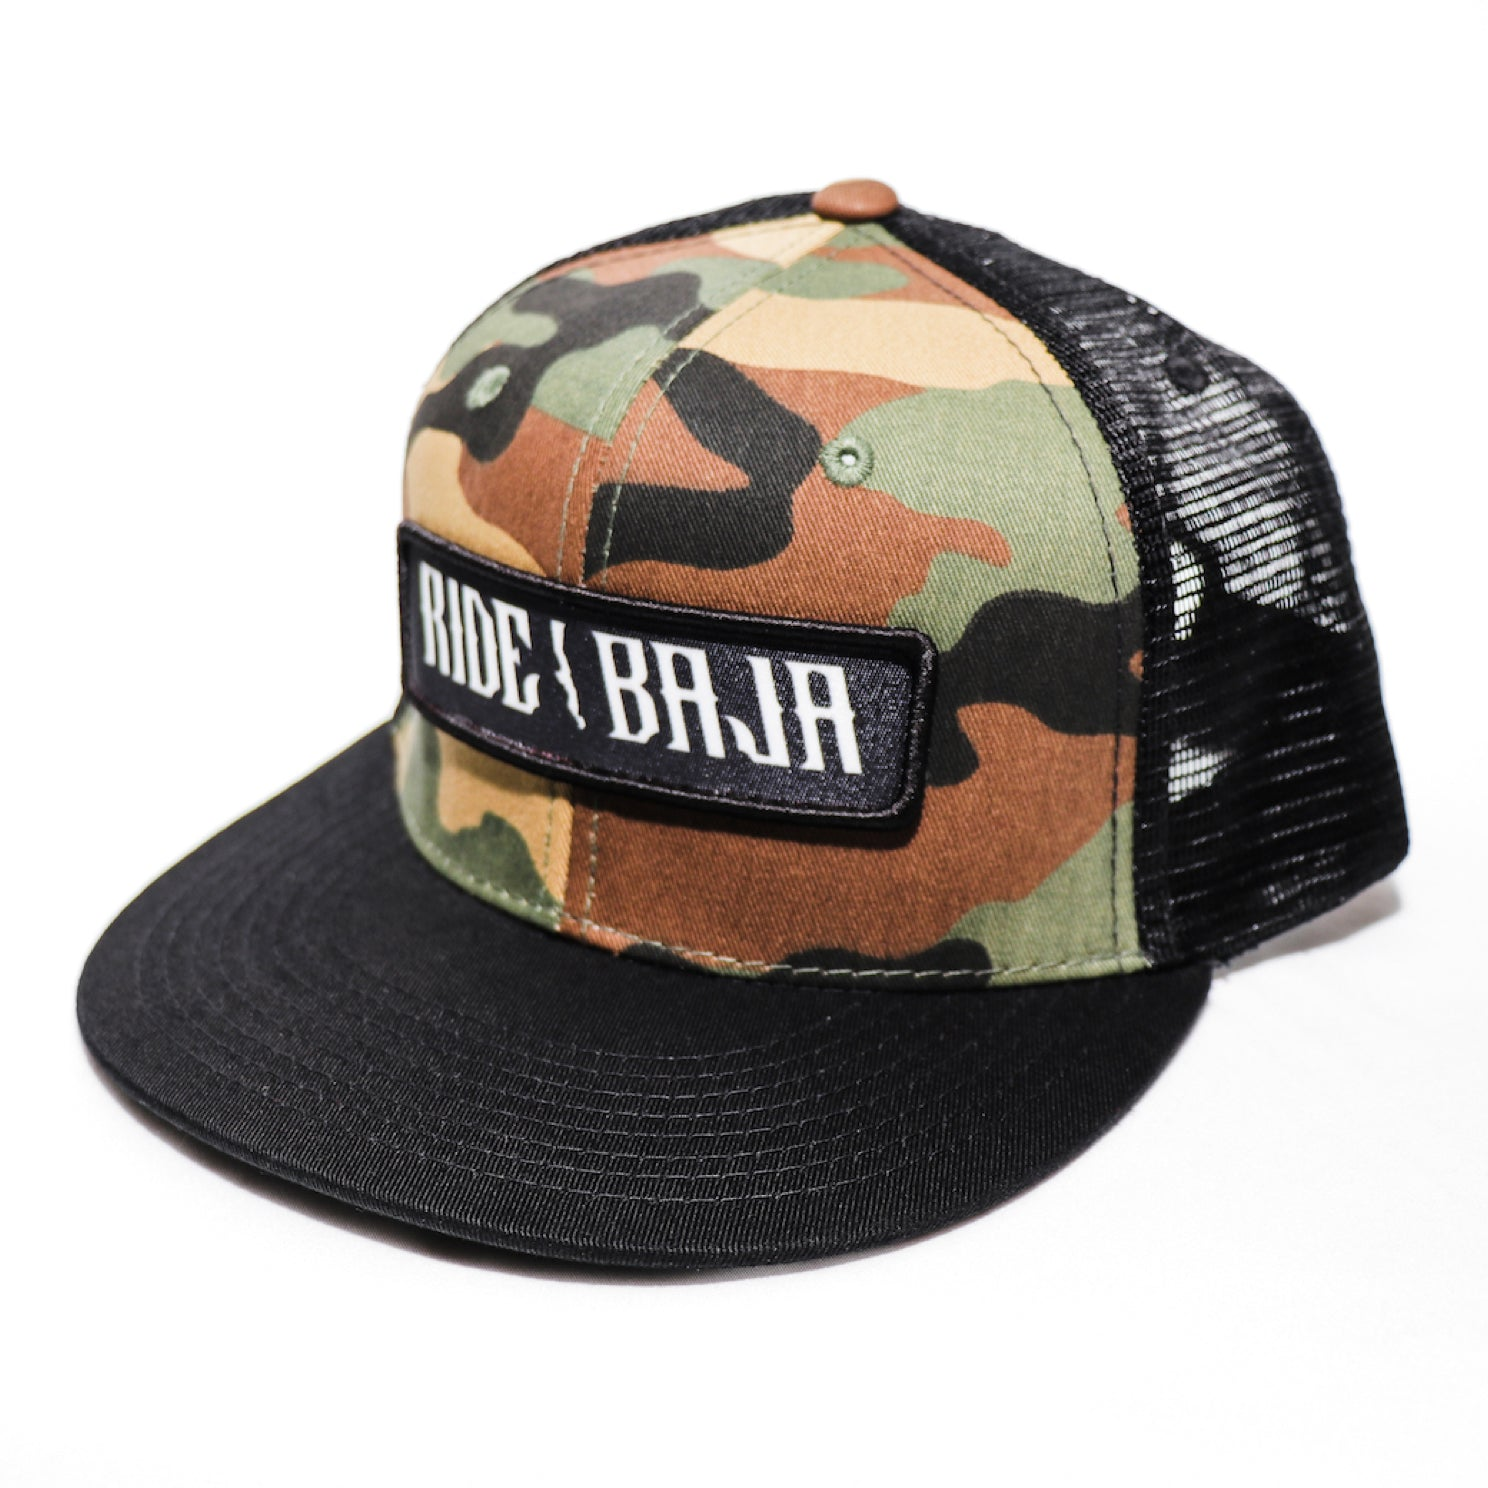 Classic Ride Baja Patch Hat - Green Camo